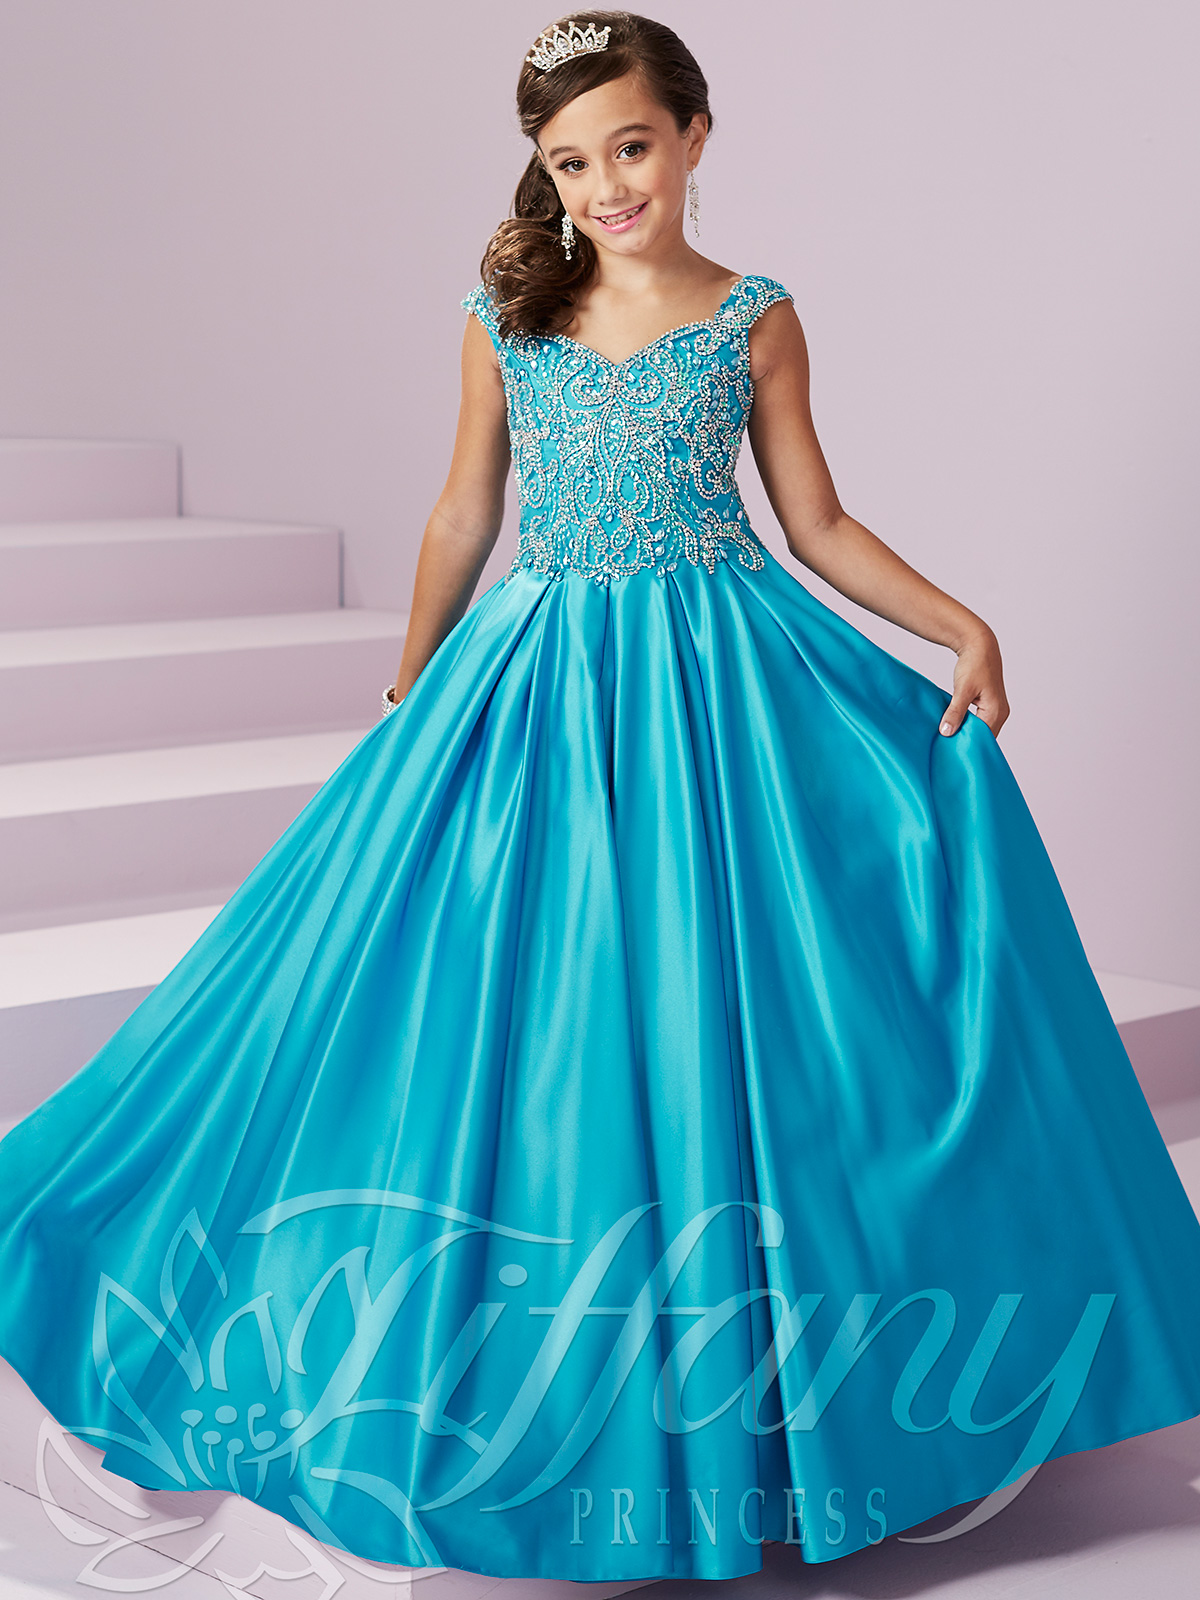 Tiffany Princess 13490 Beaded Bodice Pageant Gown|PageantDesigns.com